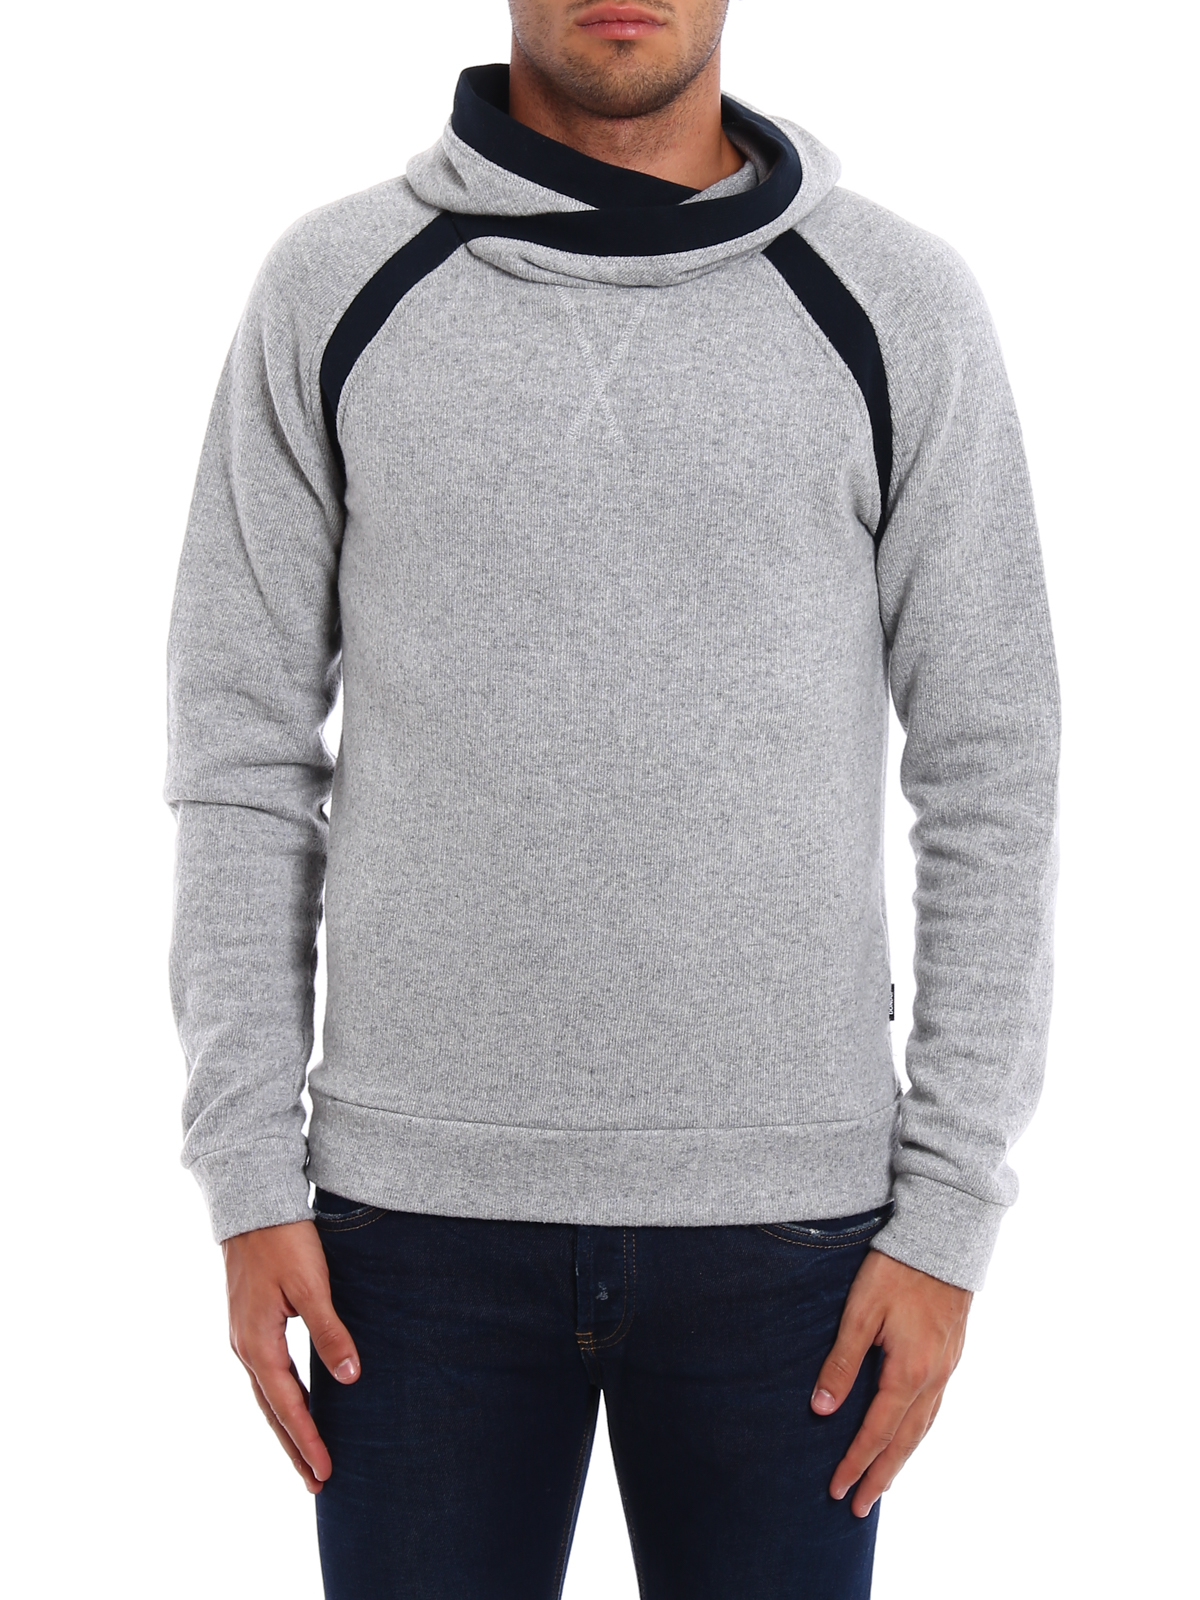 Cotton and wool blend hoodie by Dondup - Sweatshirts & Sweaters ...